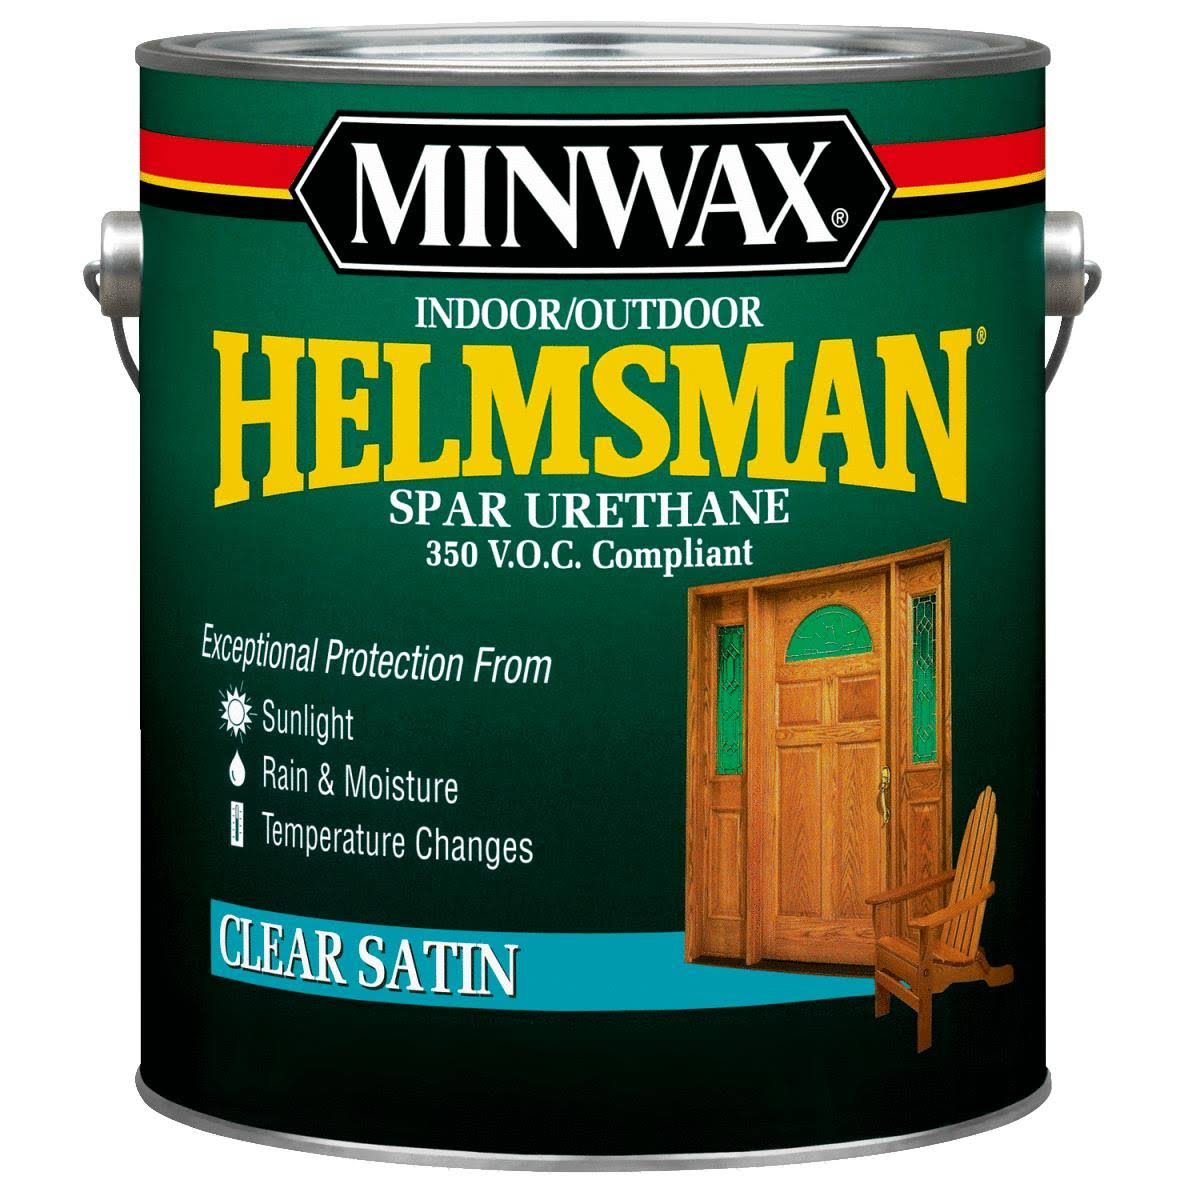 Minwax Helmsman VOC Spar Interior and Exterior Varnish - 1 Gallon